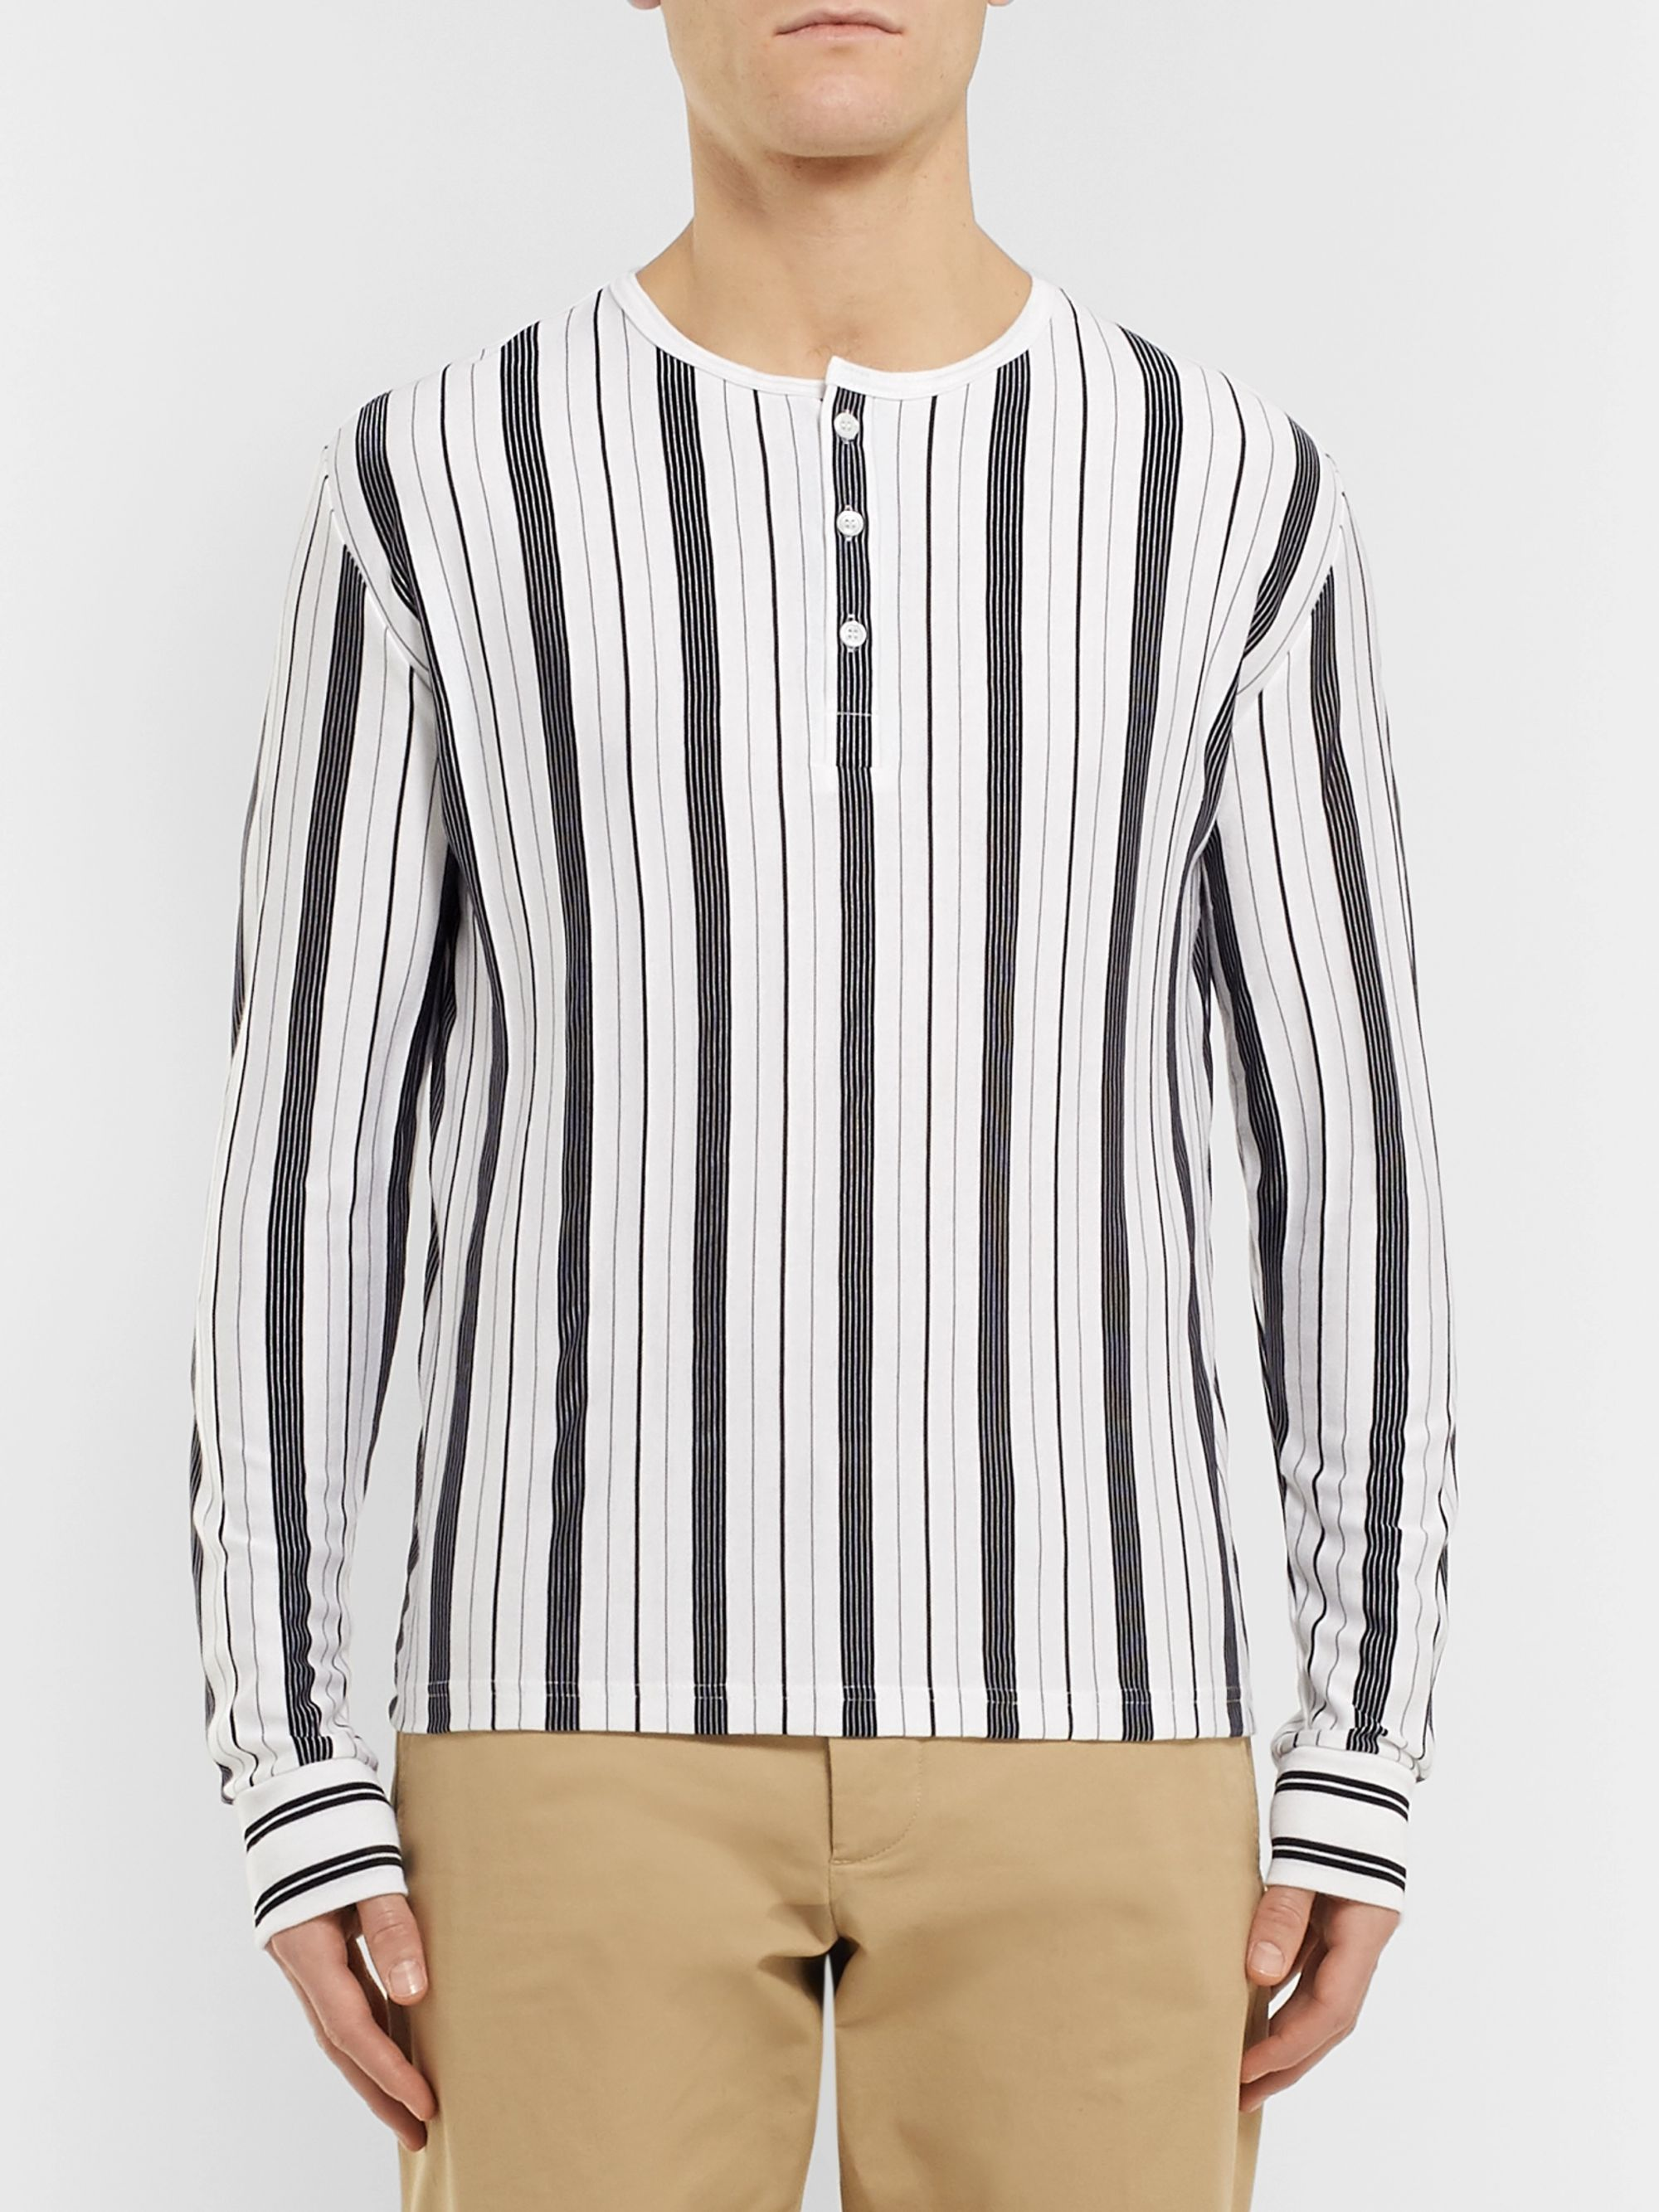 A.P.C. Mérioul Slim-Fit Striped Jersey Henley T-Shirt